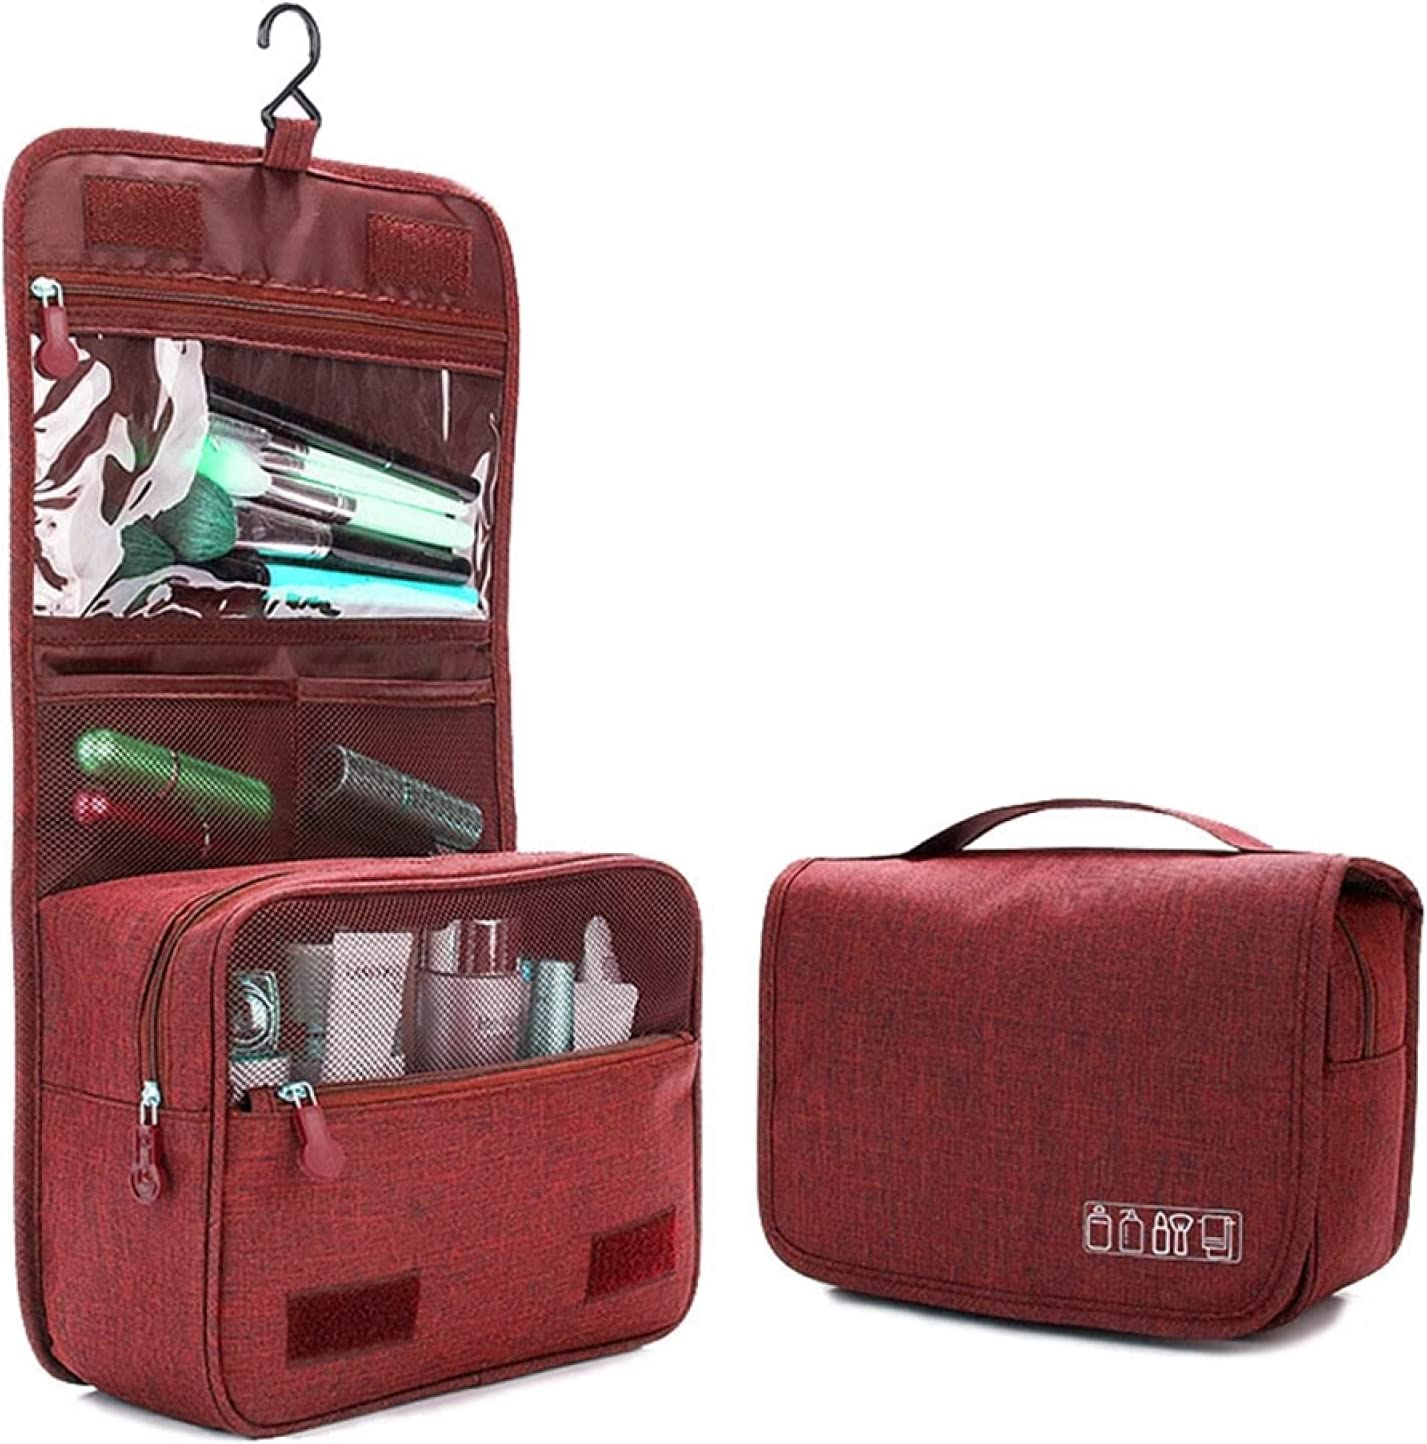 Cubes Portable Max 47% OFF Large Challenge the lowest price of Japan Capacity Multi-function Organize Bag Simple